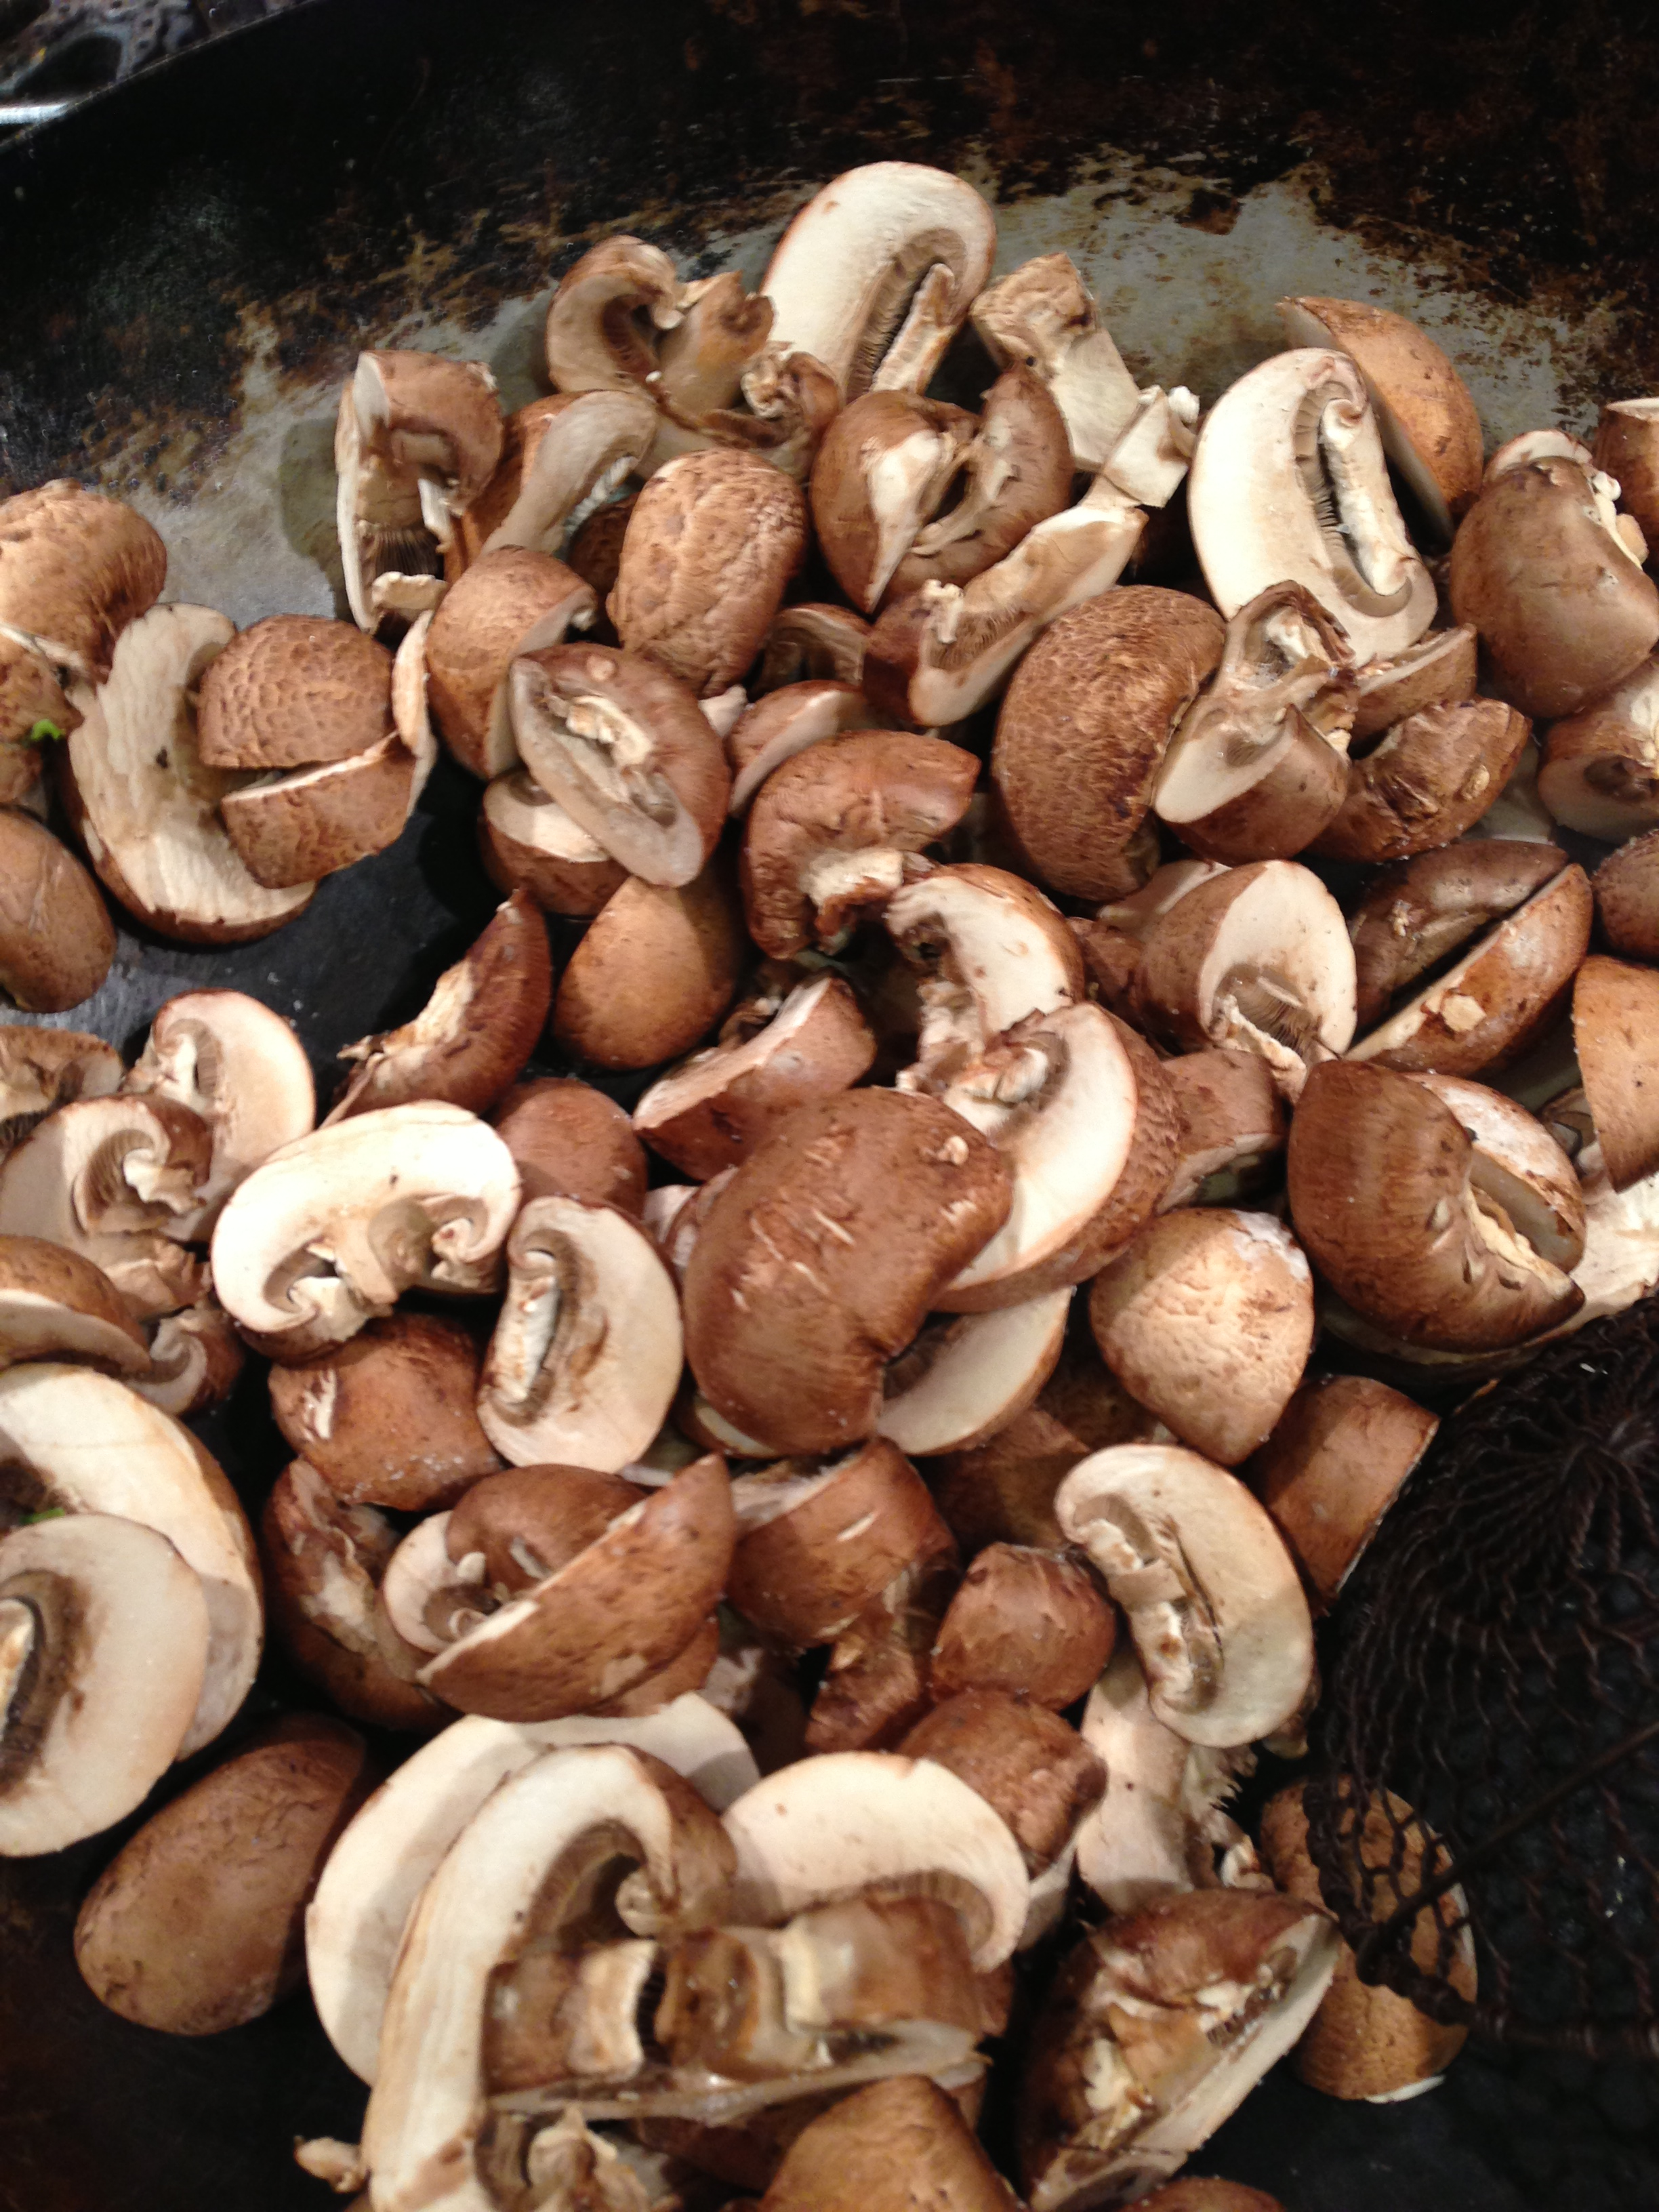 Now slice the mushrooms and sauté them until just done. In case no one has ever told you this, don't wash your mushrooms in water to clean them. I used to dump mine into a bowl of water to get the dirt off and I wondered why they were always so soggy. Mushrooms are like sponges and they soak up the water. Just use a cloth or paper towel to wipe off any soil. I cook my mushrooms in my dry wok on high heat. Because of the high moisture content of the mushrooms you don't need any oil or butter. Just add a little salt and stir until they're ready. After they're done, you can add any oil or butter or seasonings you like.